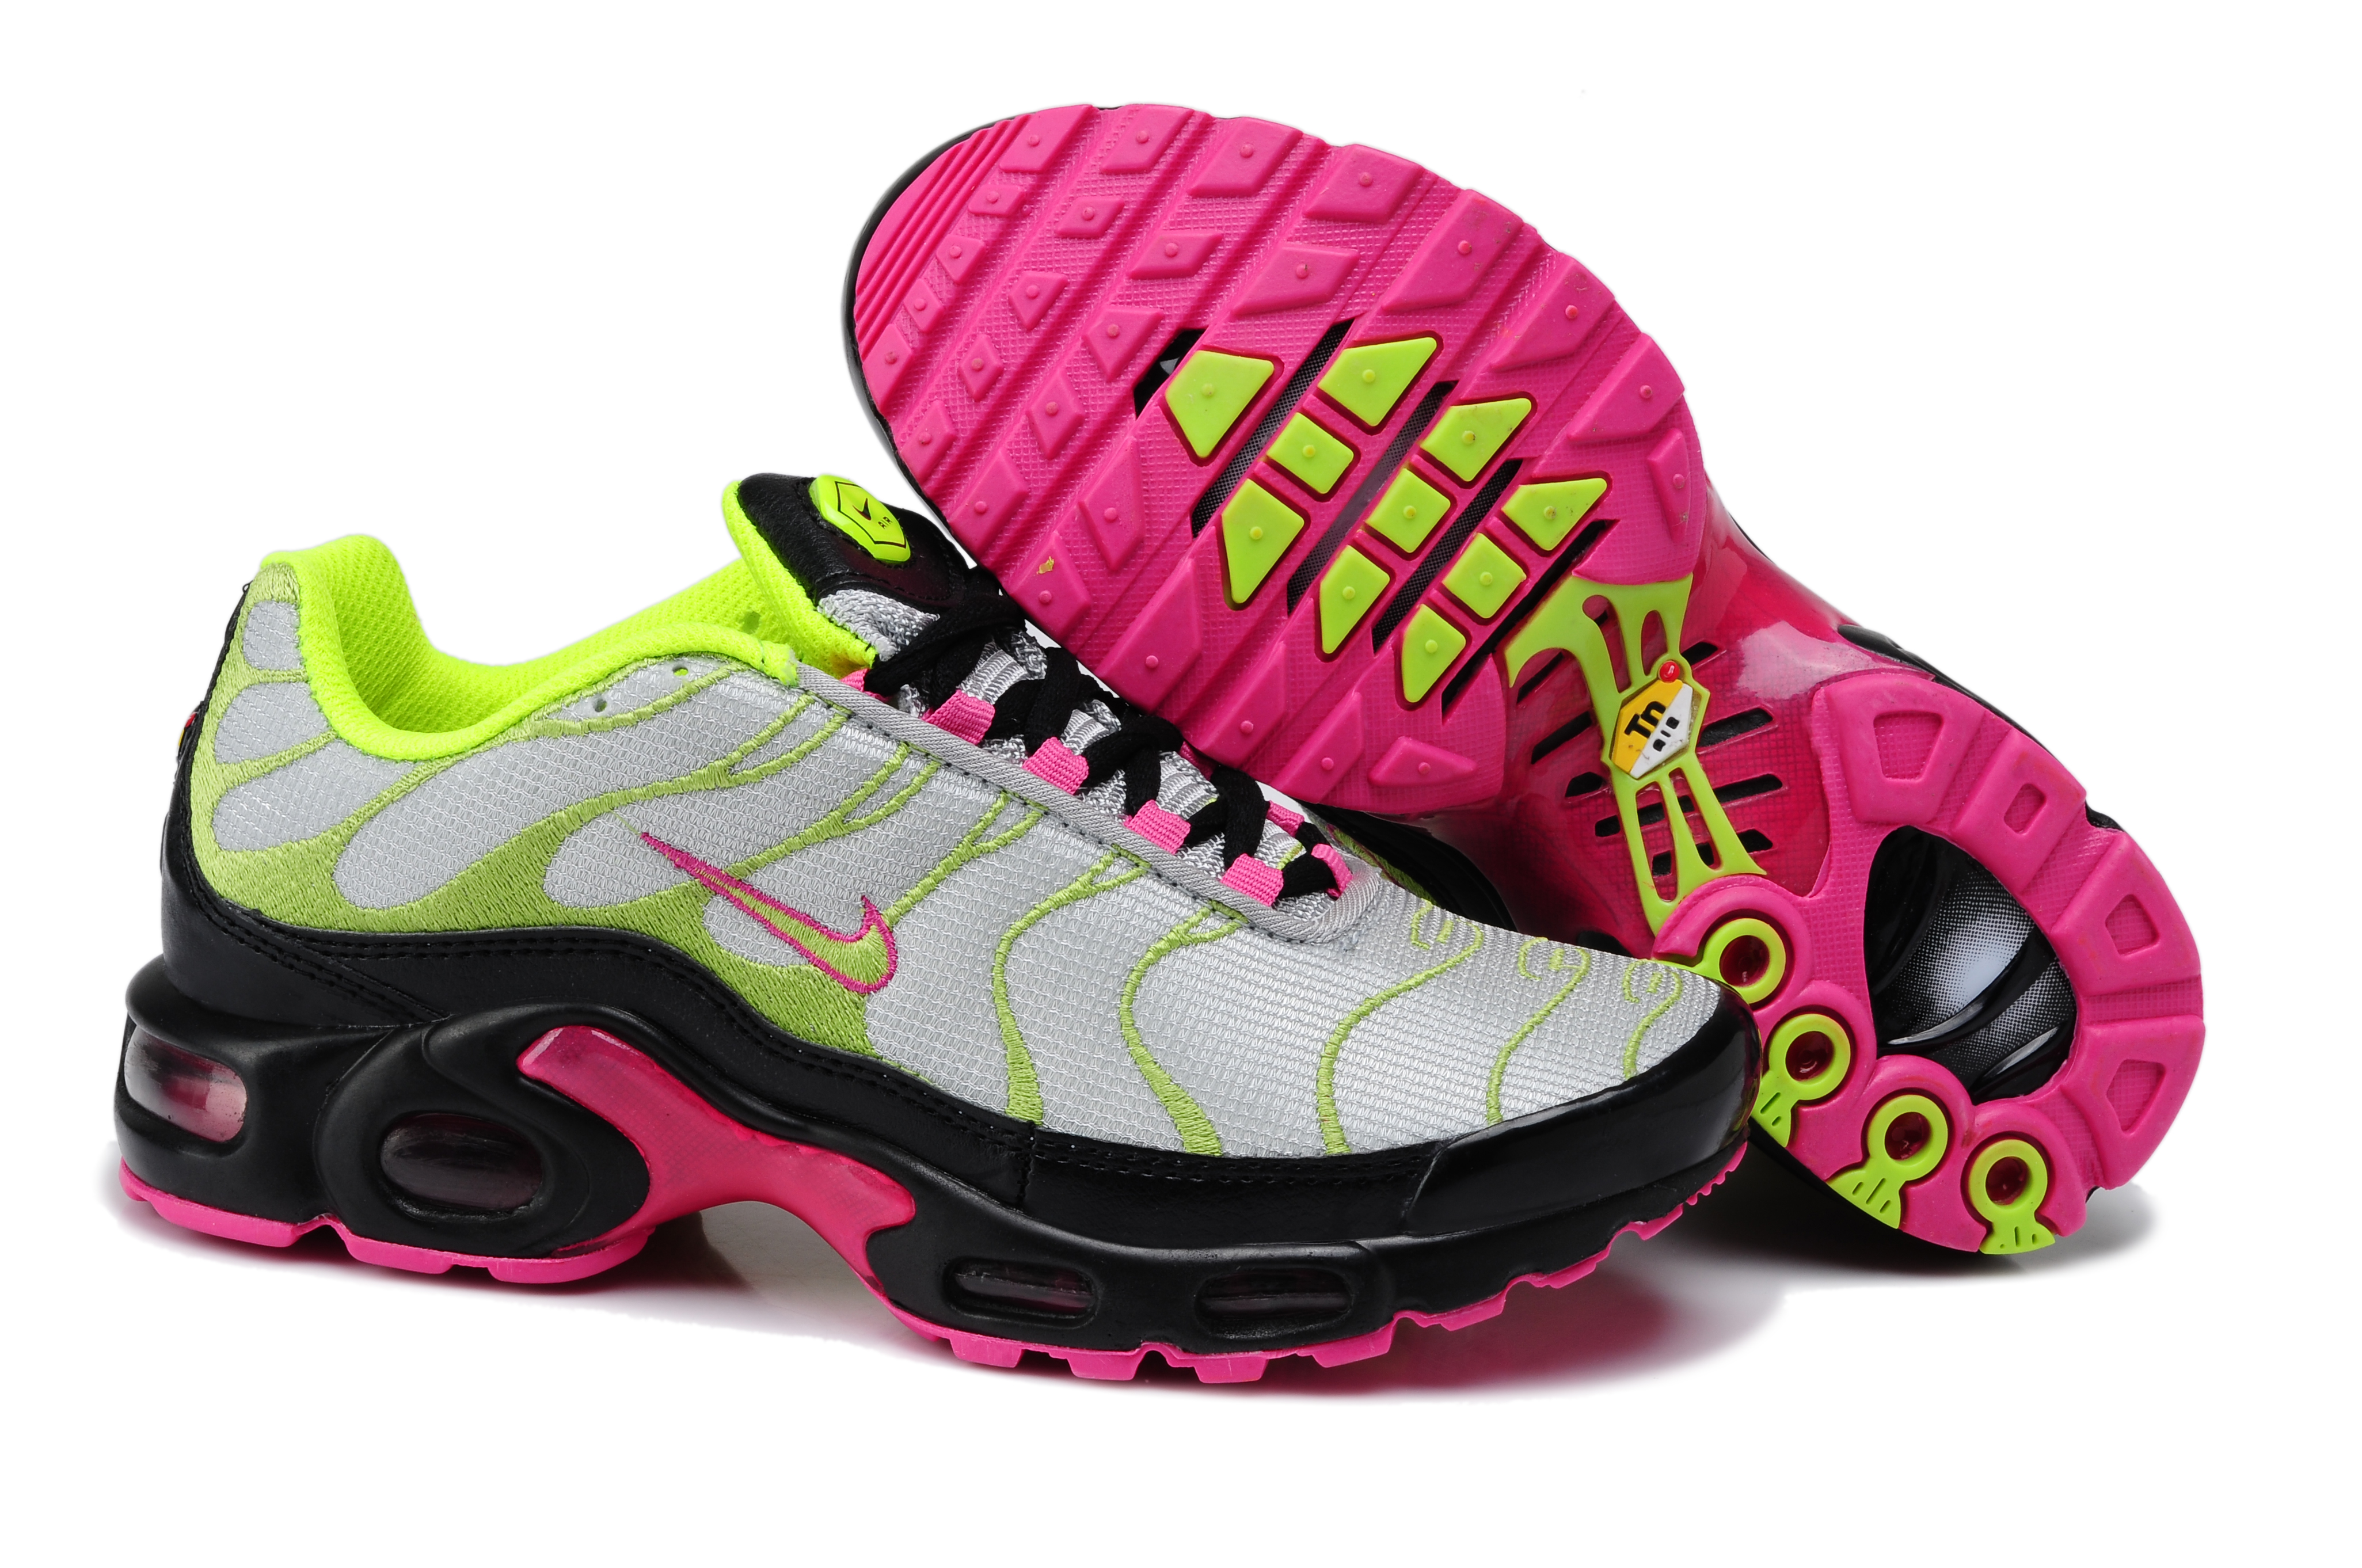 new product ee7c4 1427d Nike TN 2016 Femme Homme Nouveaux Femme nike air max tailwind 2010 achat nike  air max